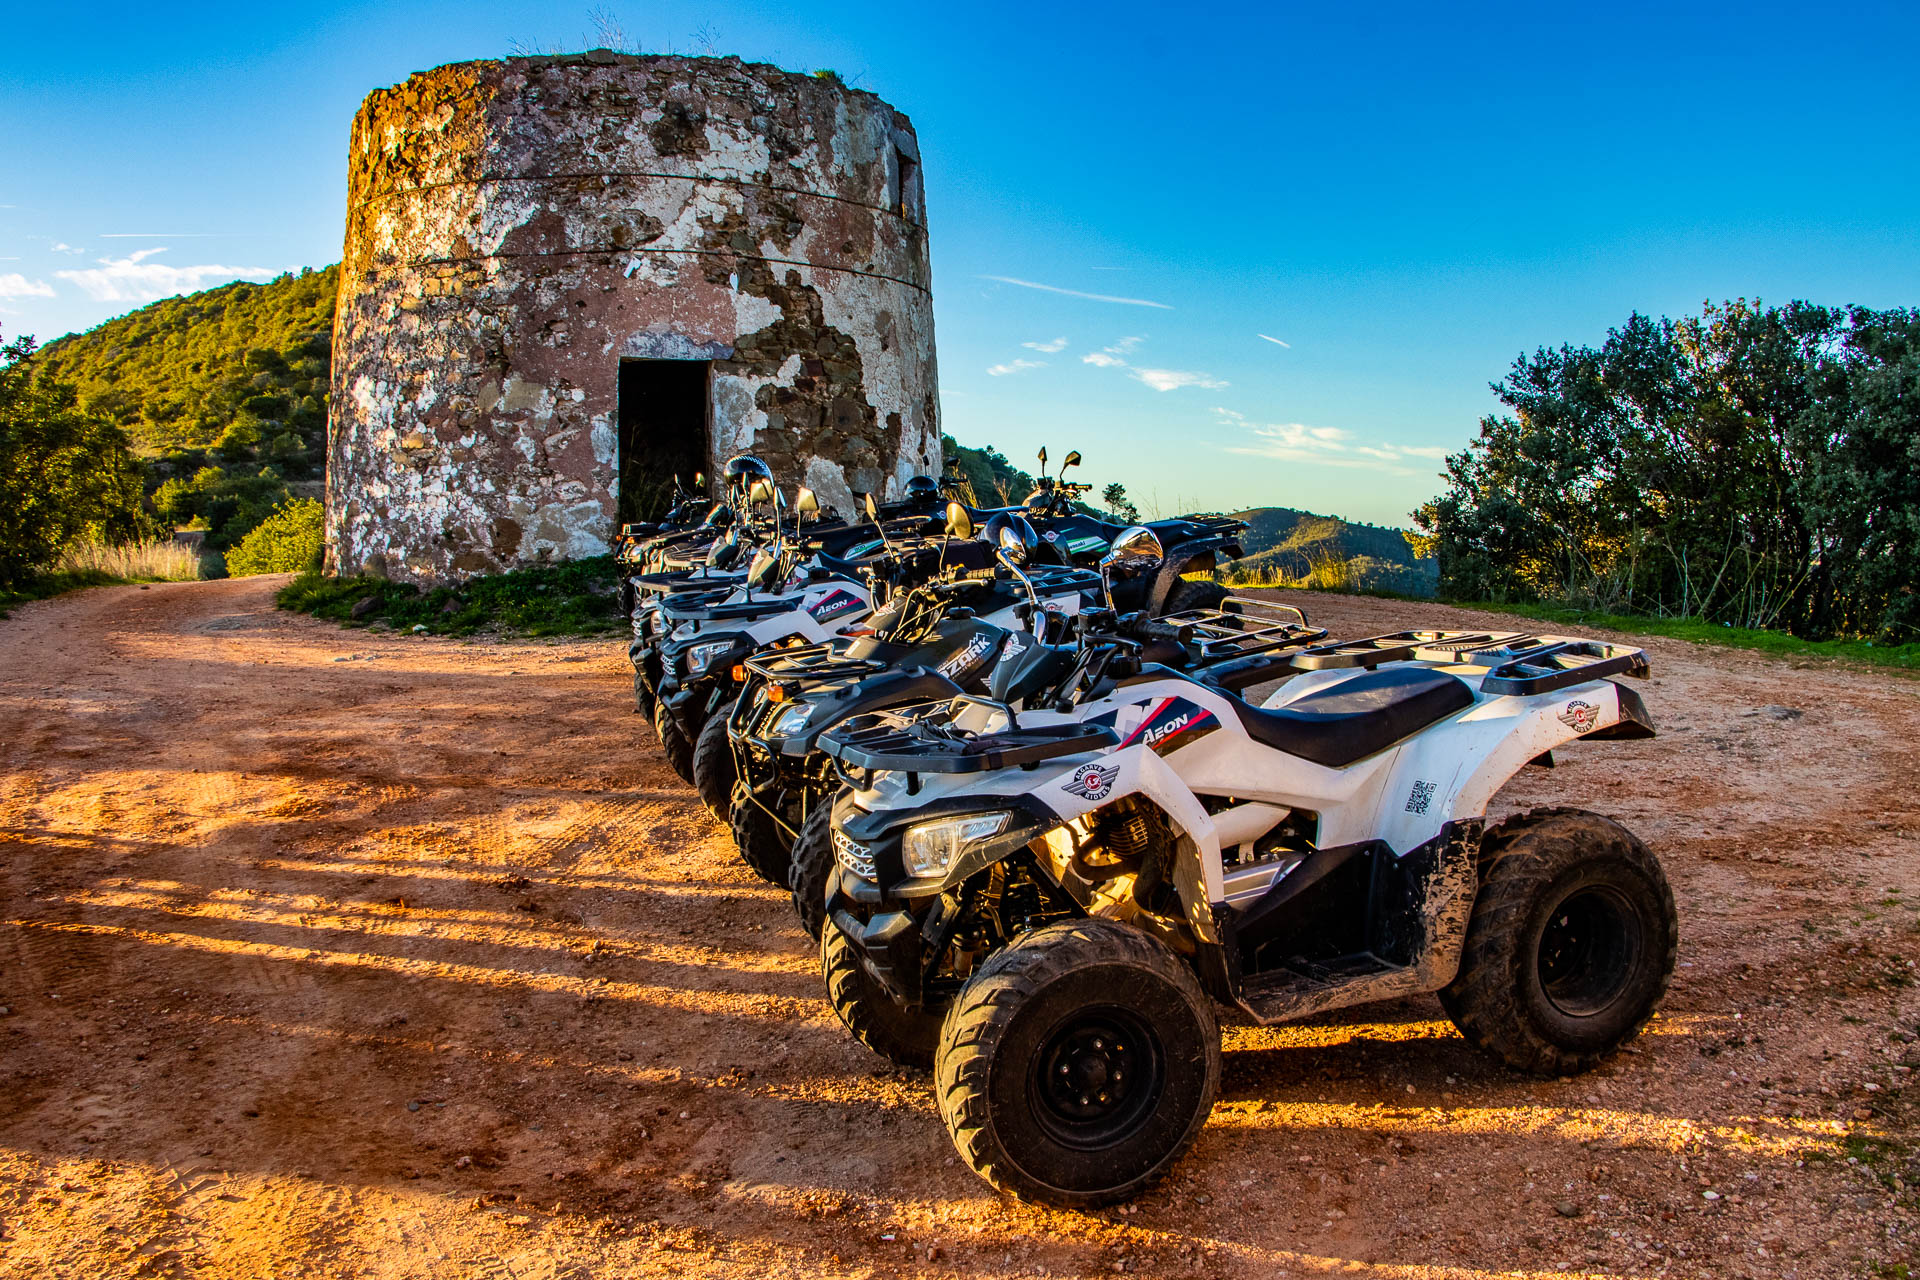 Quad Tours in Algarve's Countryside